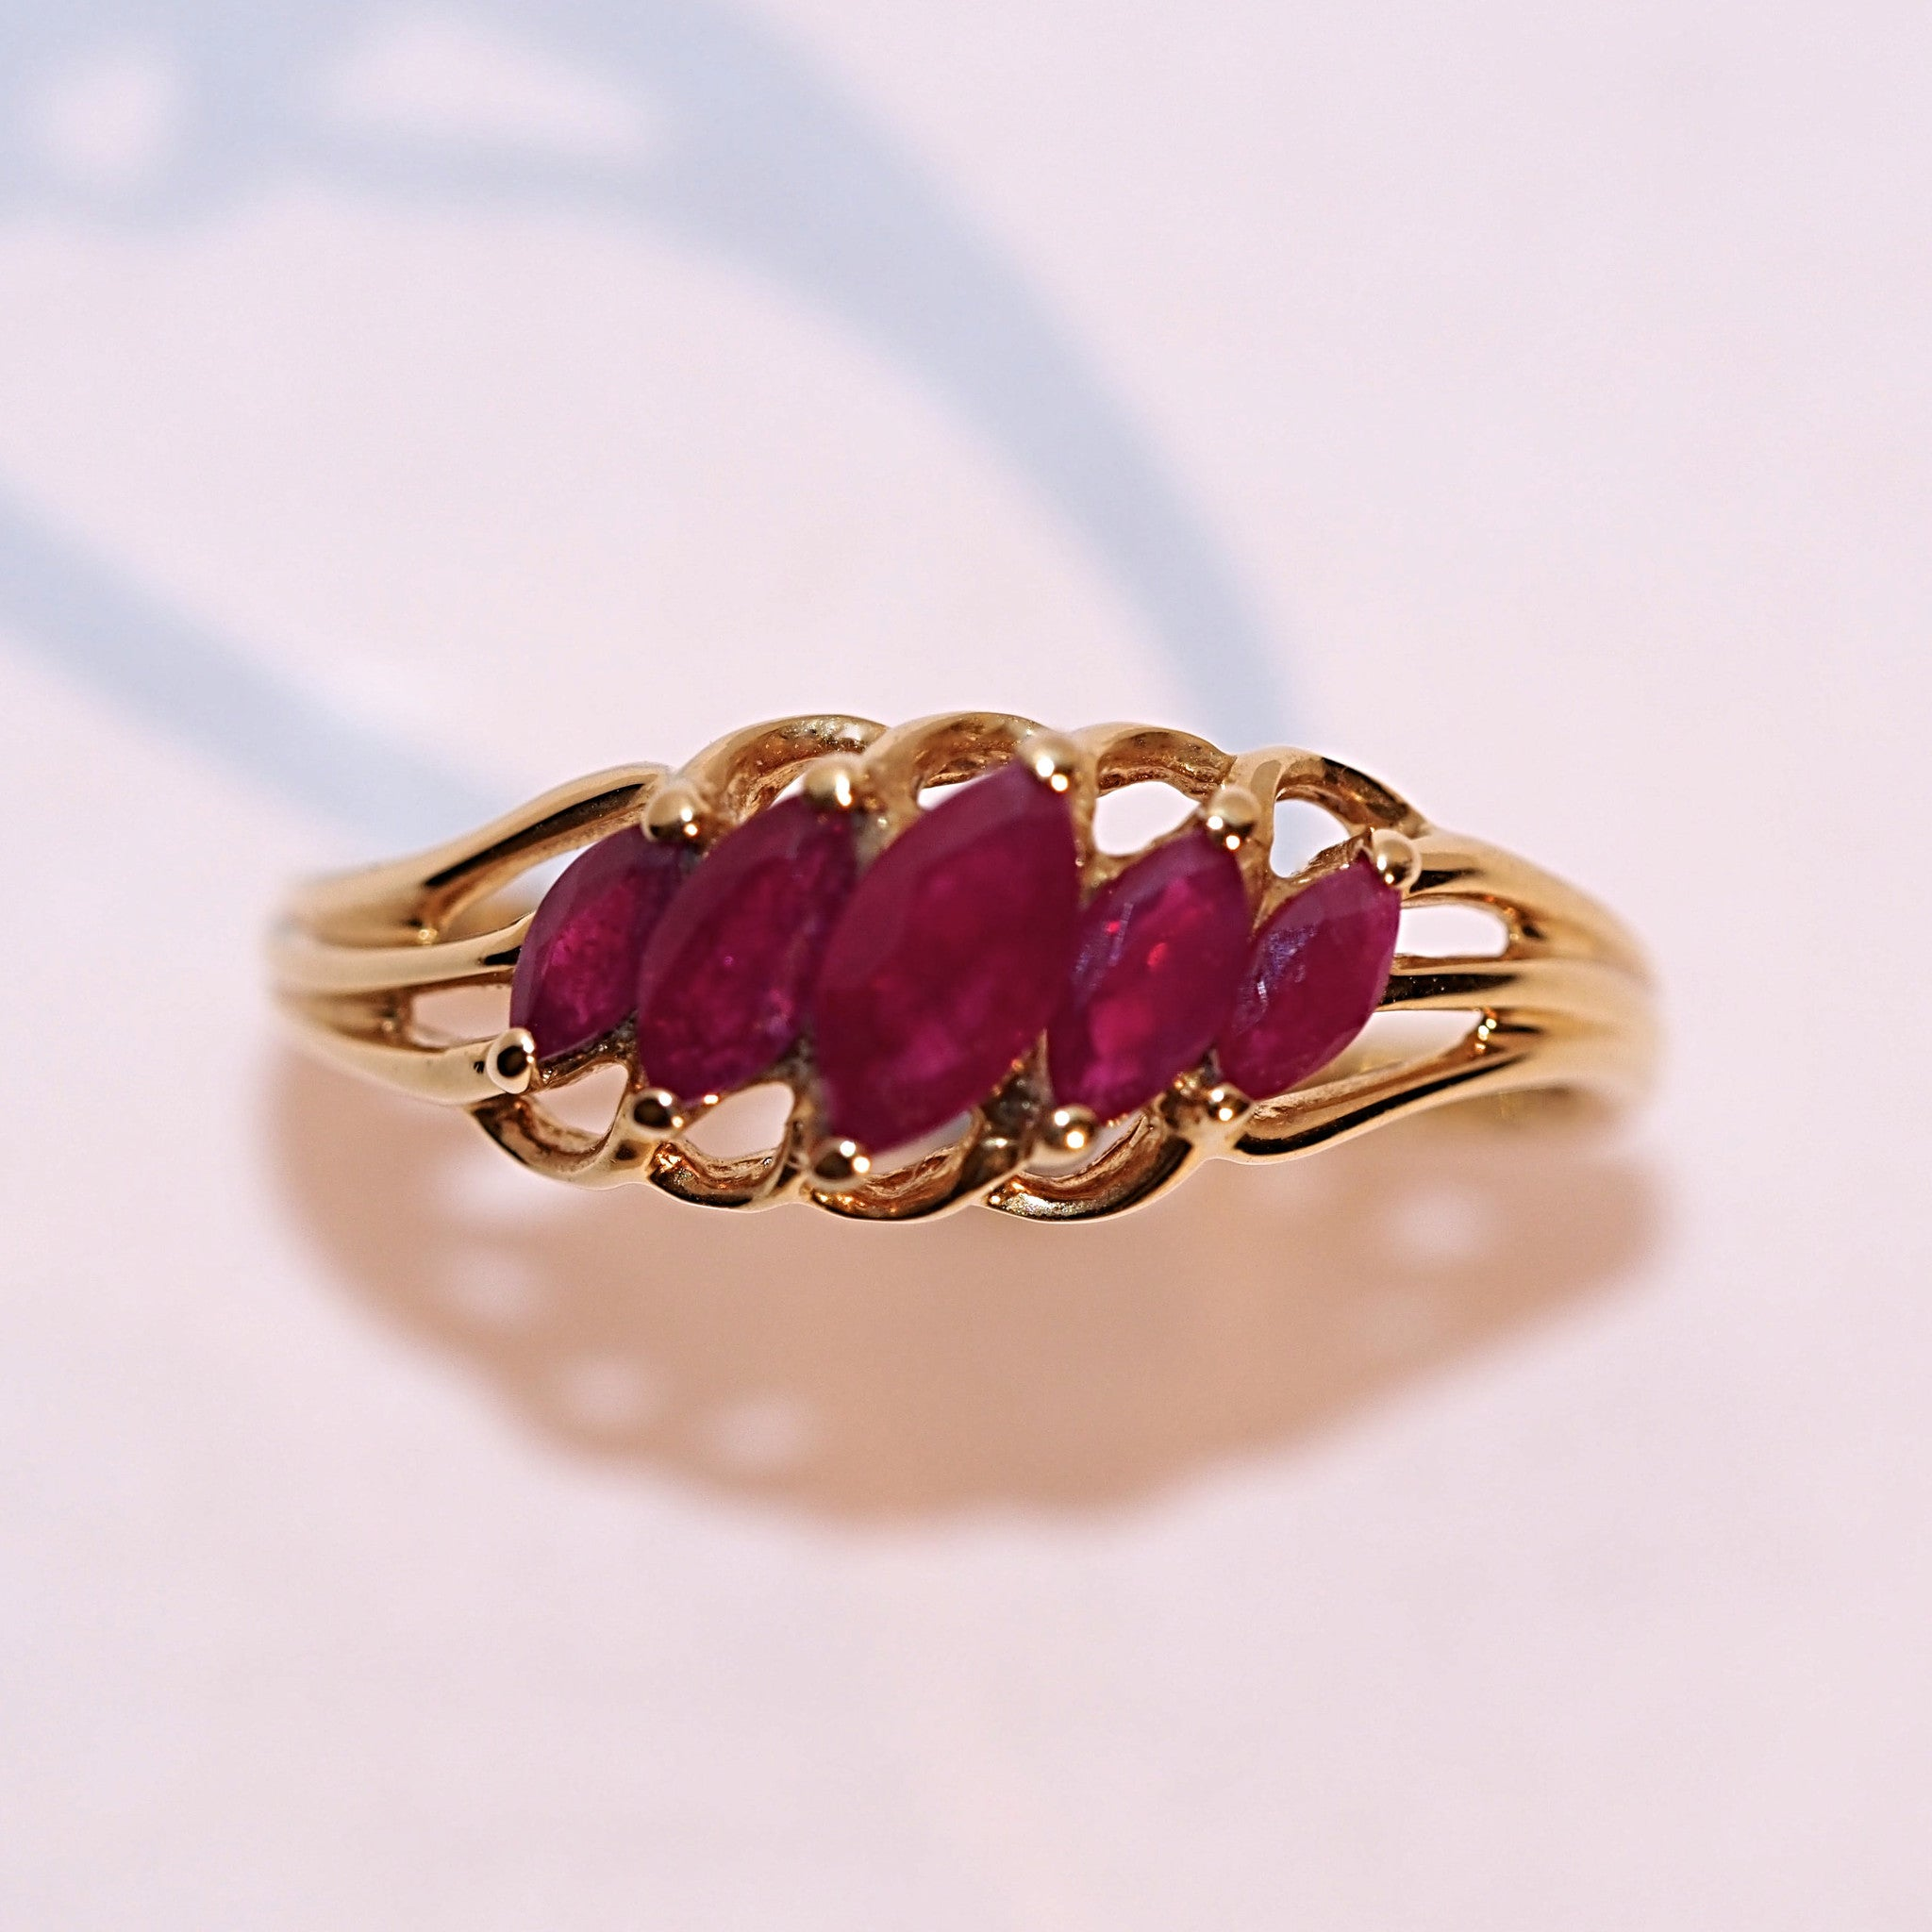 Vintage Graduated Marquise Ruby Ring - Hallmark Goldsmiths - 2